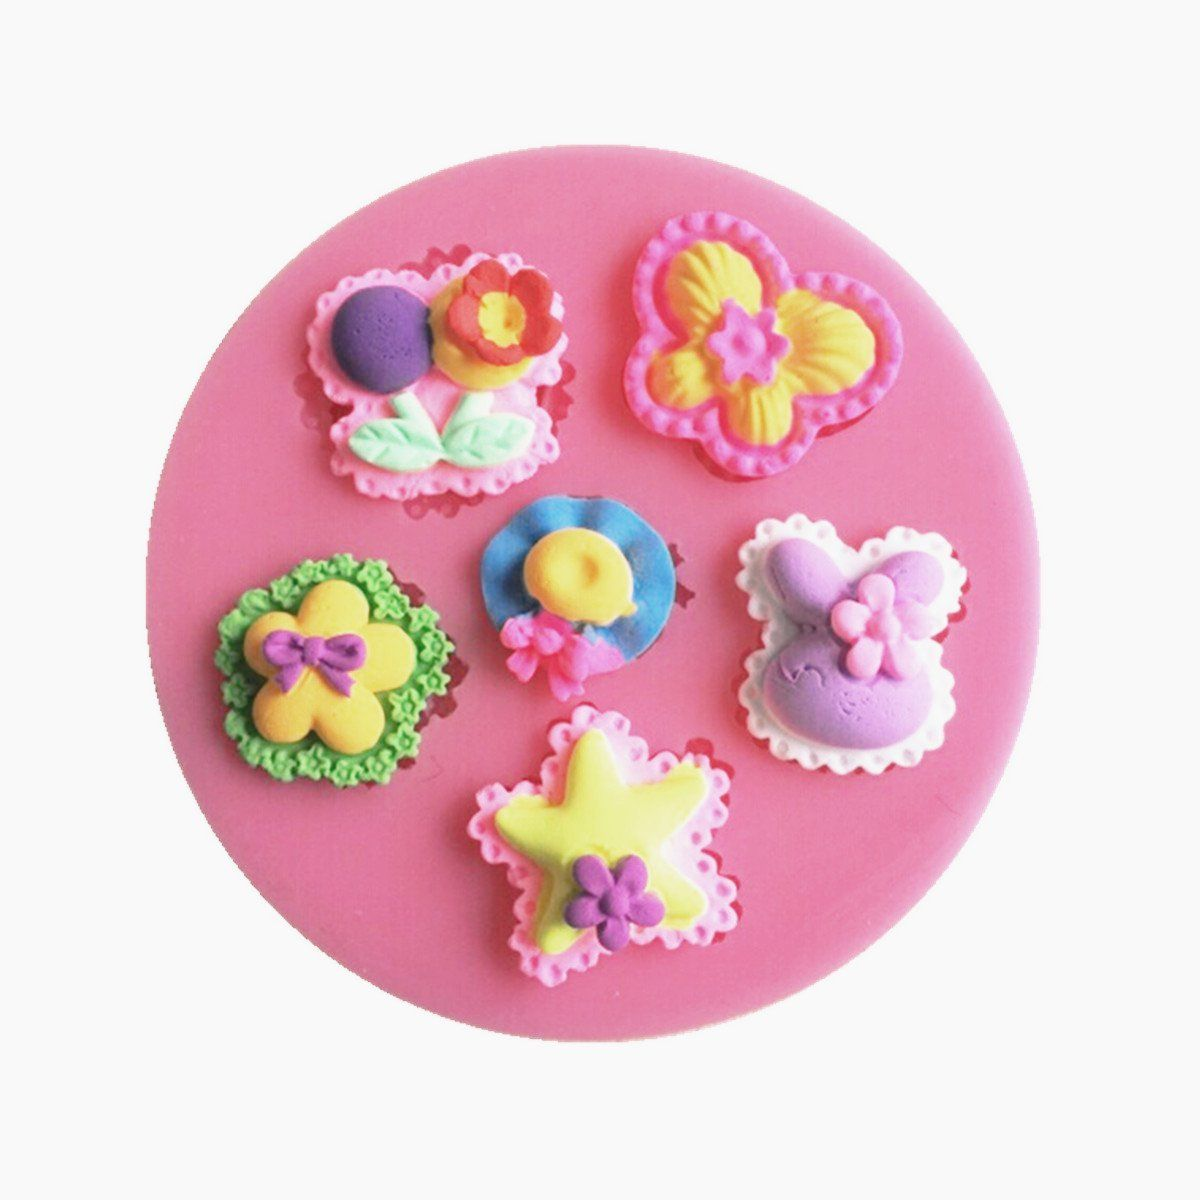 9261a50d34 KookieMonsta Baby Girl Silicone Mould Small Pastry Mold for Cupcake  Decoration -- To view further